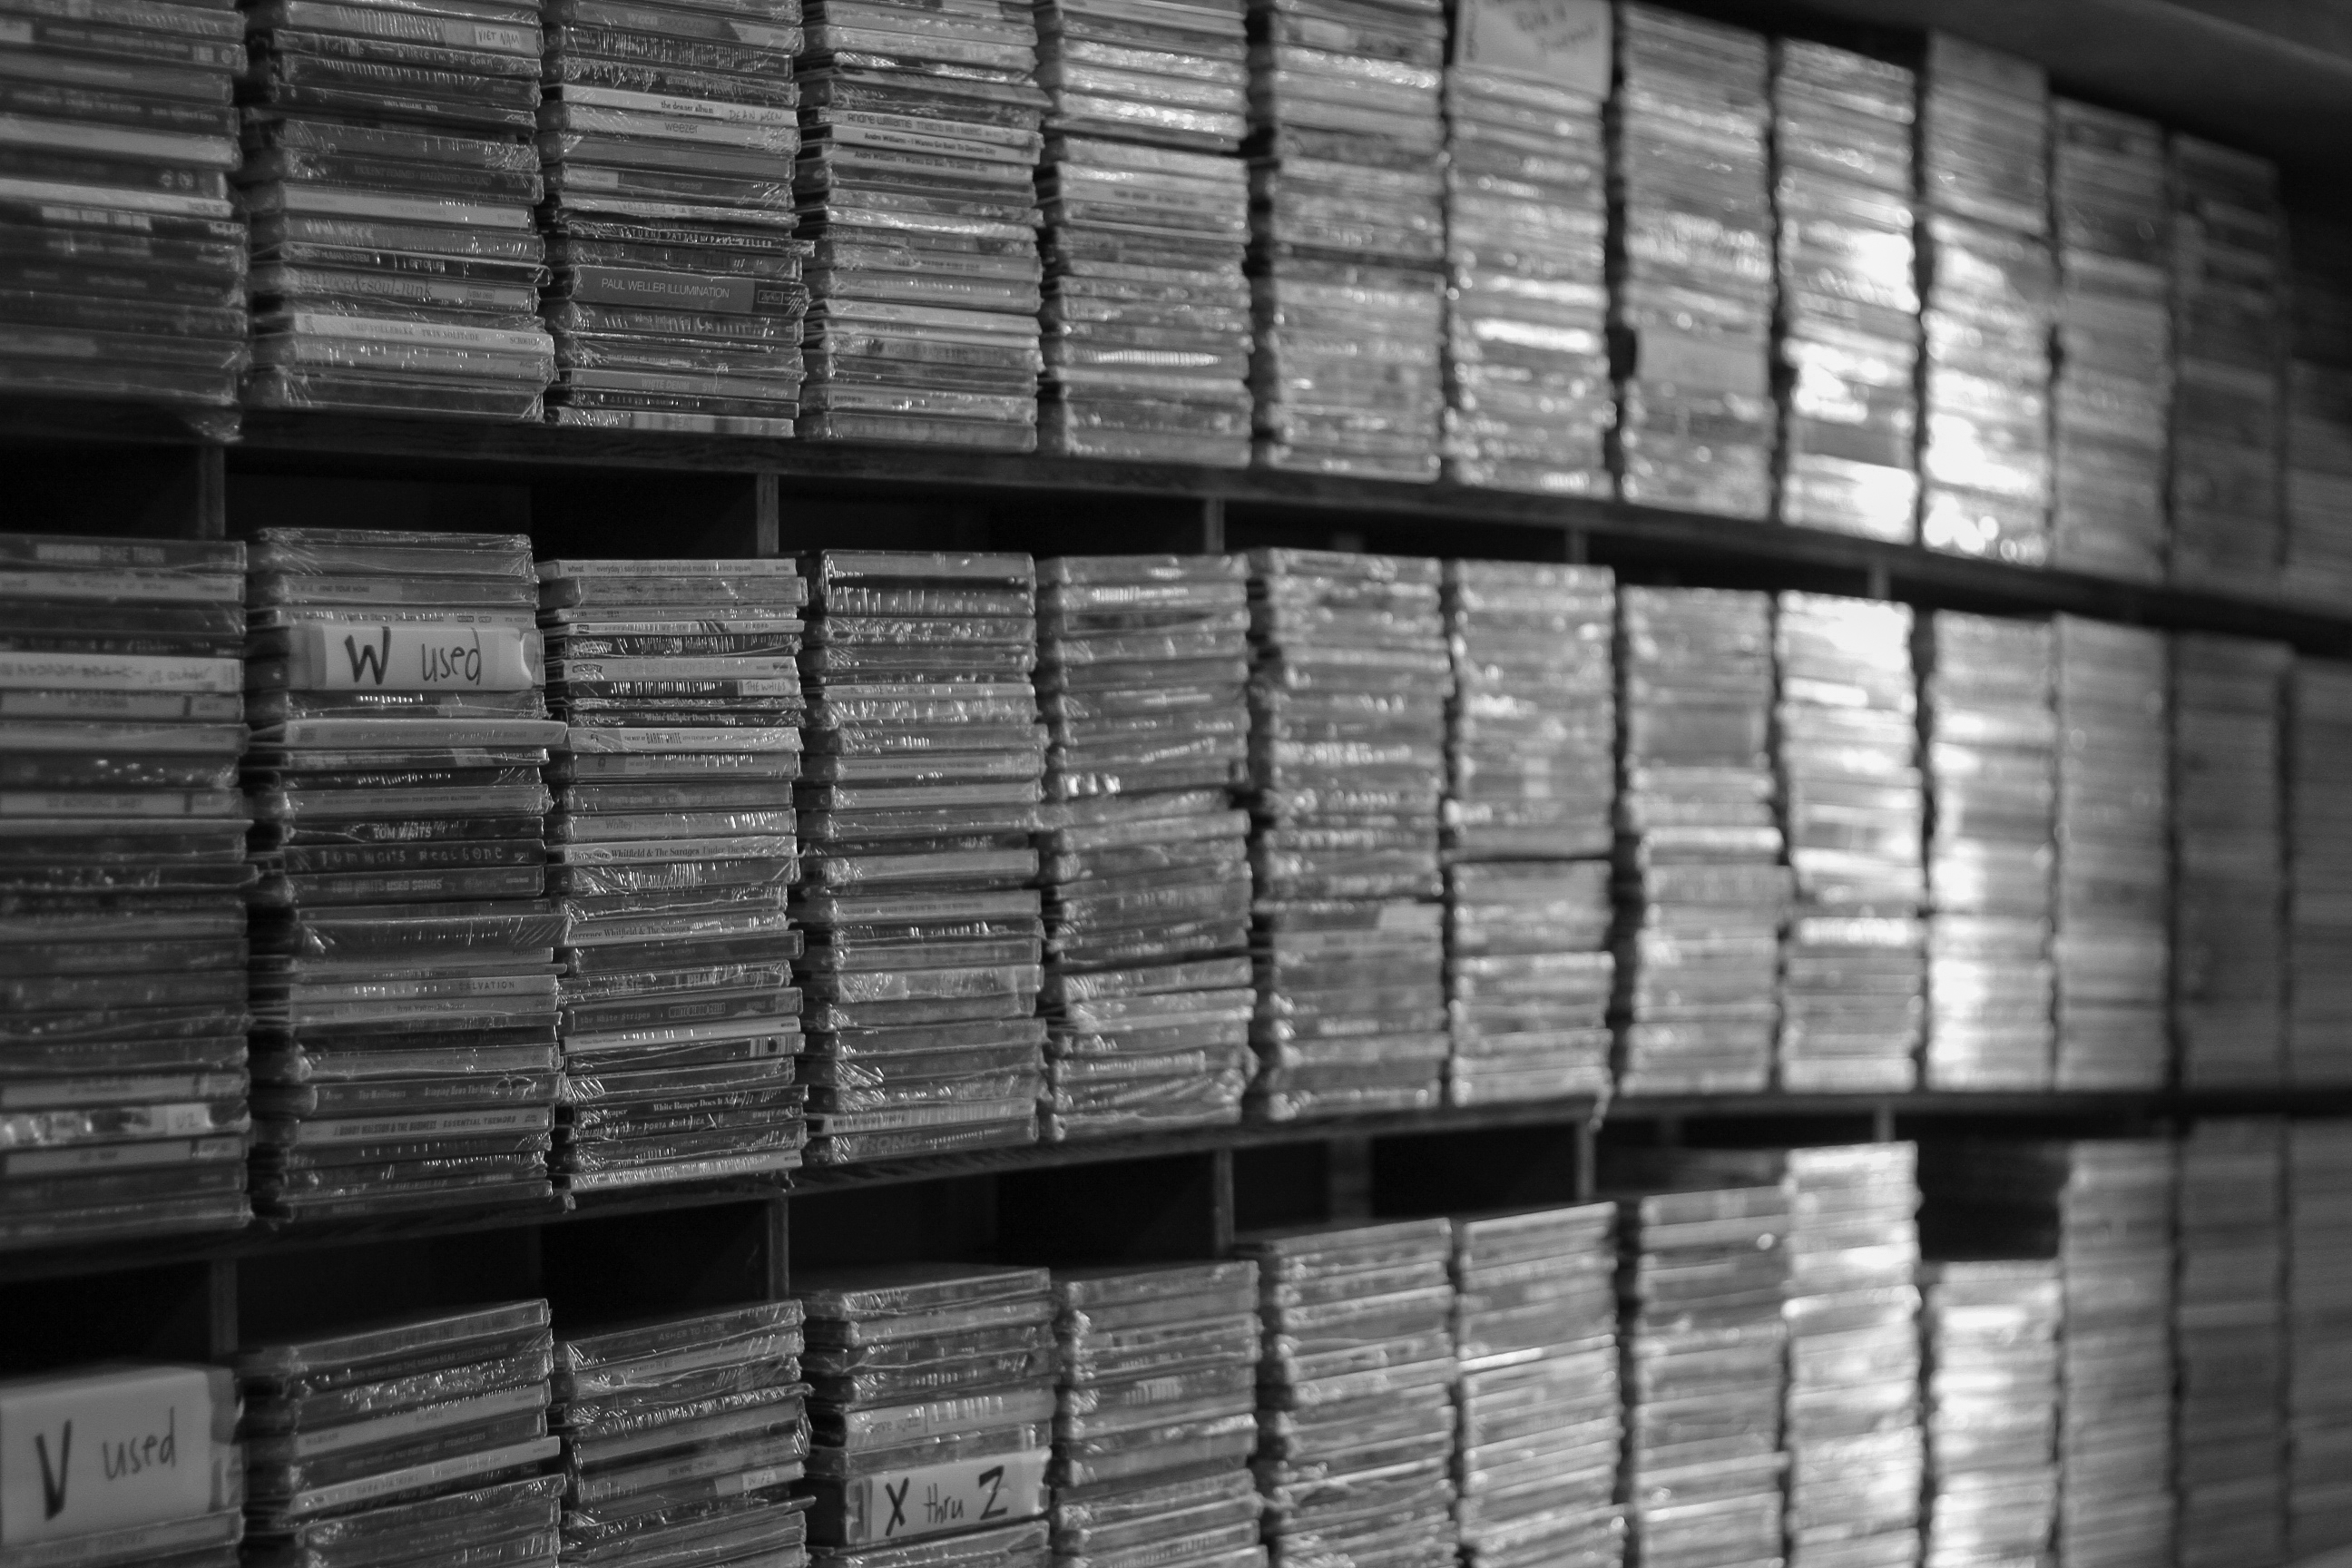 Distribution Select & Outside Music Merge Their Sales & Distribution Services